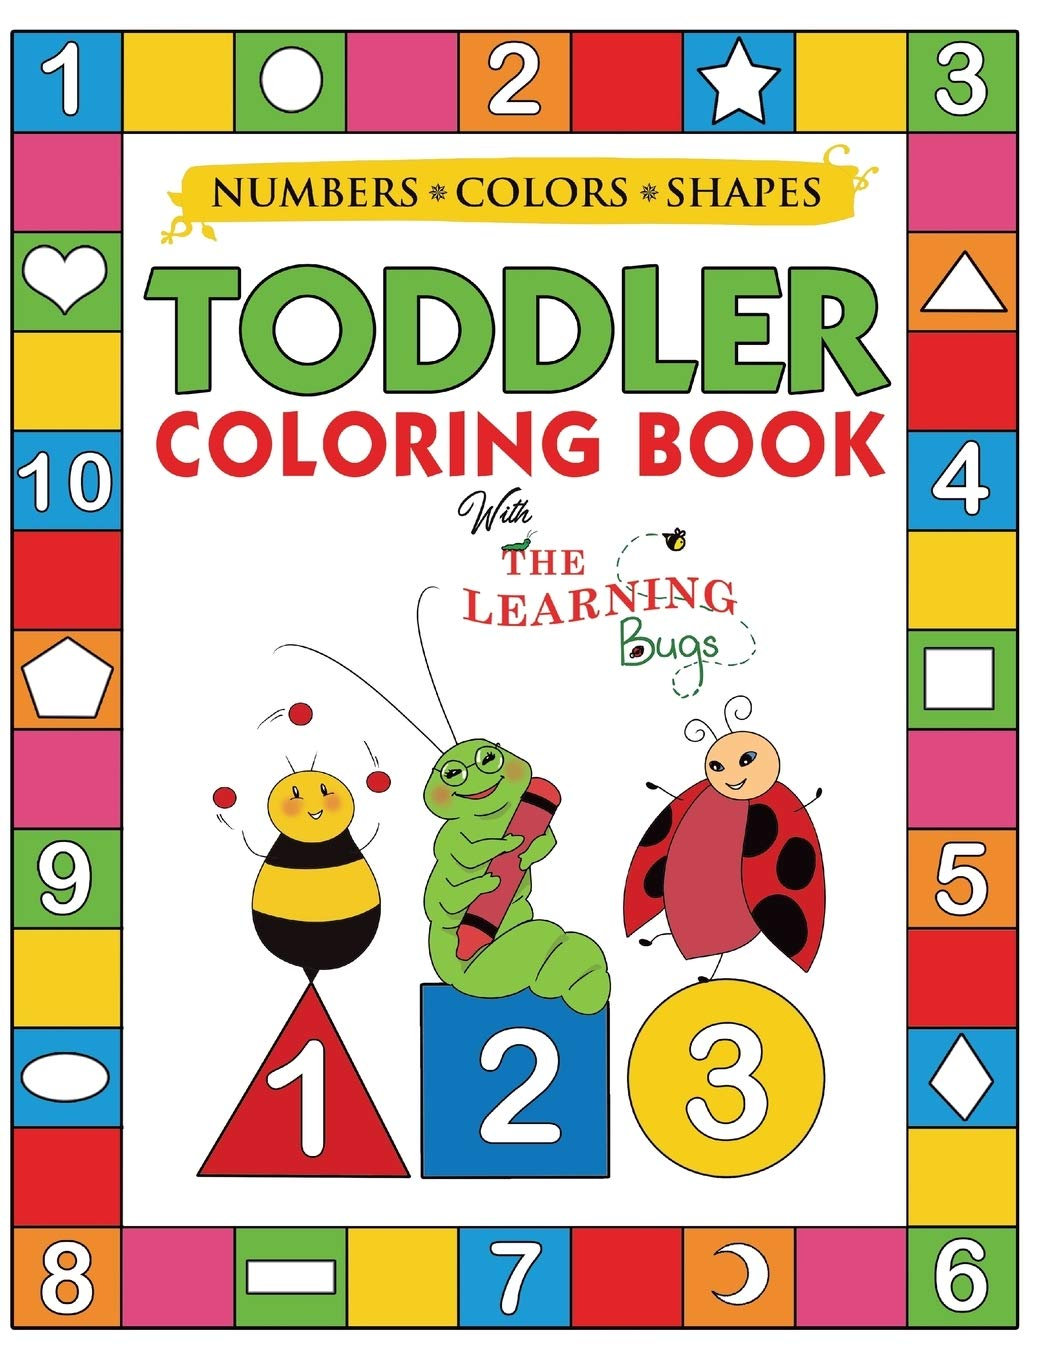 Amazon Com My Numbers Colors And Shapes Toddler Coloring Book With The Learning Bugs Fun Children S Activity Coloring Books For Toddlers And Kids Ages 2 3 4 5 For Kindergarten Preschool